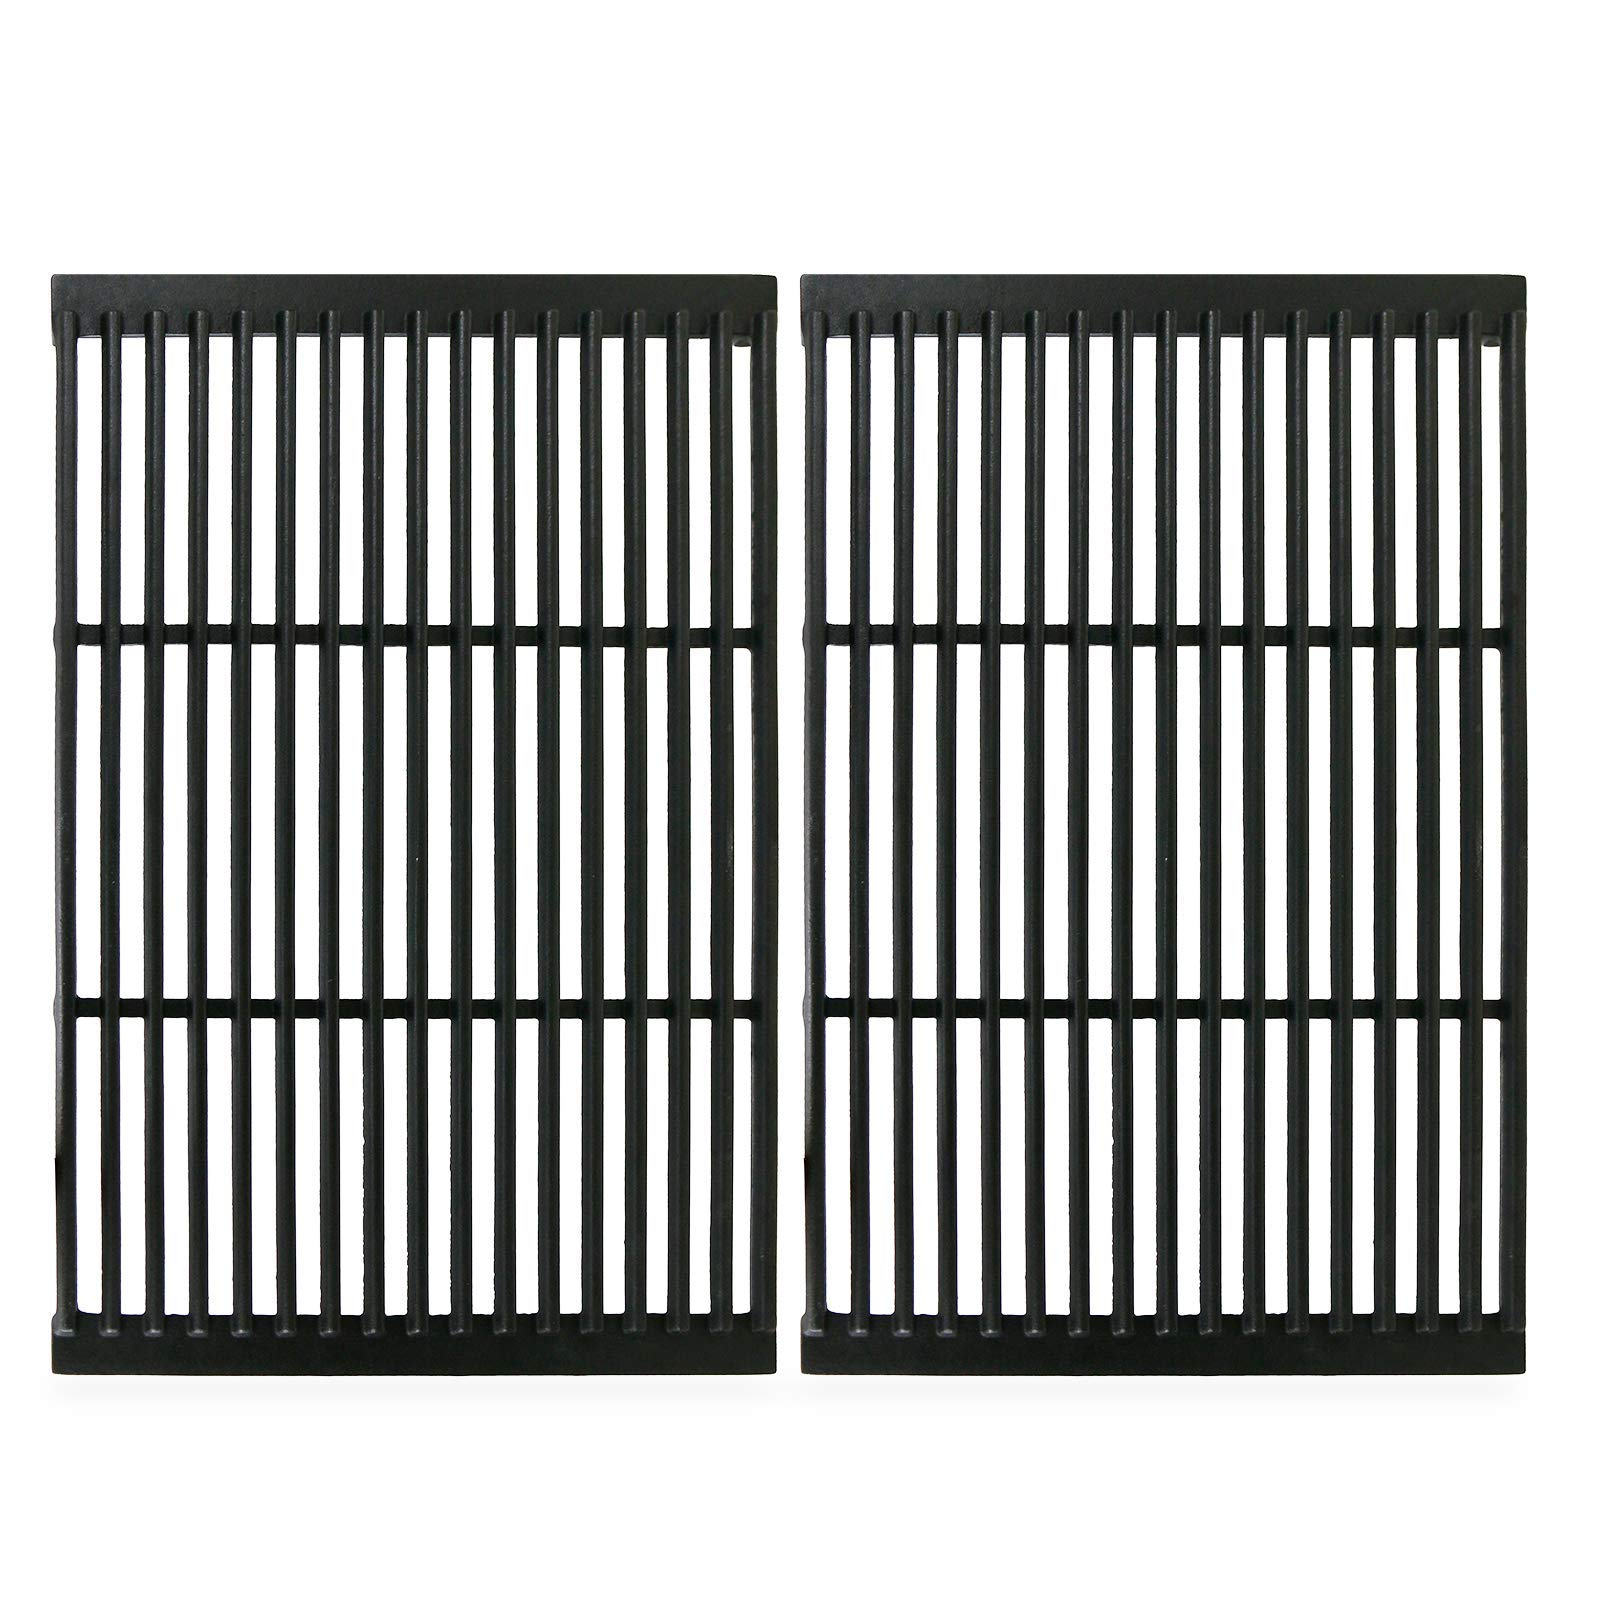 "Hisencn Matte Cast Iron Cooking Grate 19"" x 12.5"" Replacement for Charbroil, Brinkmann, Charmglow, Broil-Mate, Grill Pro, Grill Zone, Sterling, Turbo, Grill Chef Grill Grid Set of 2"